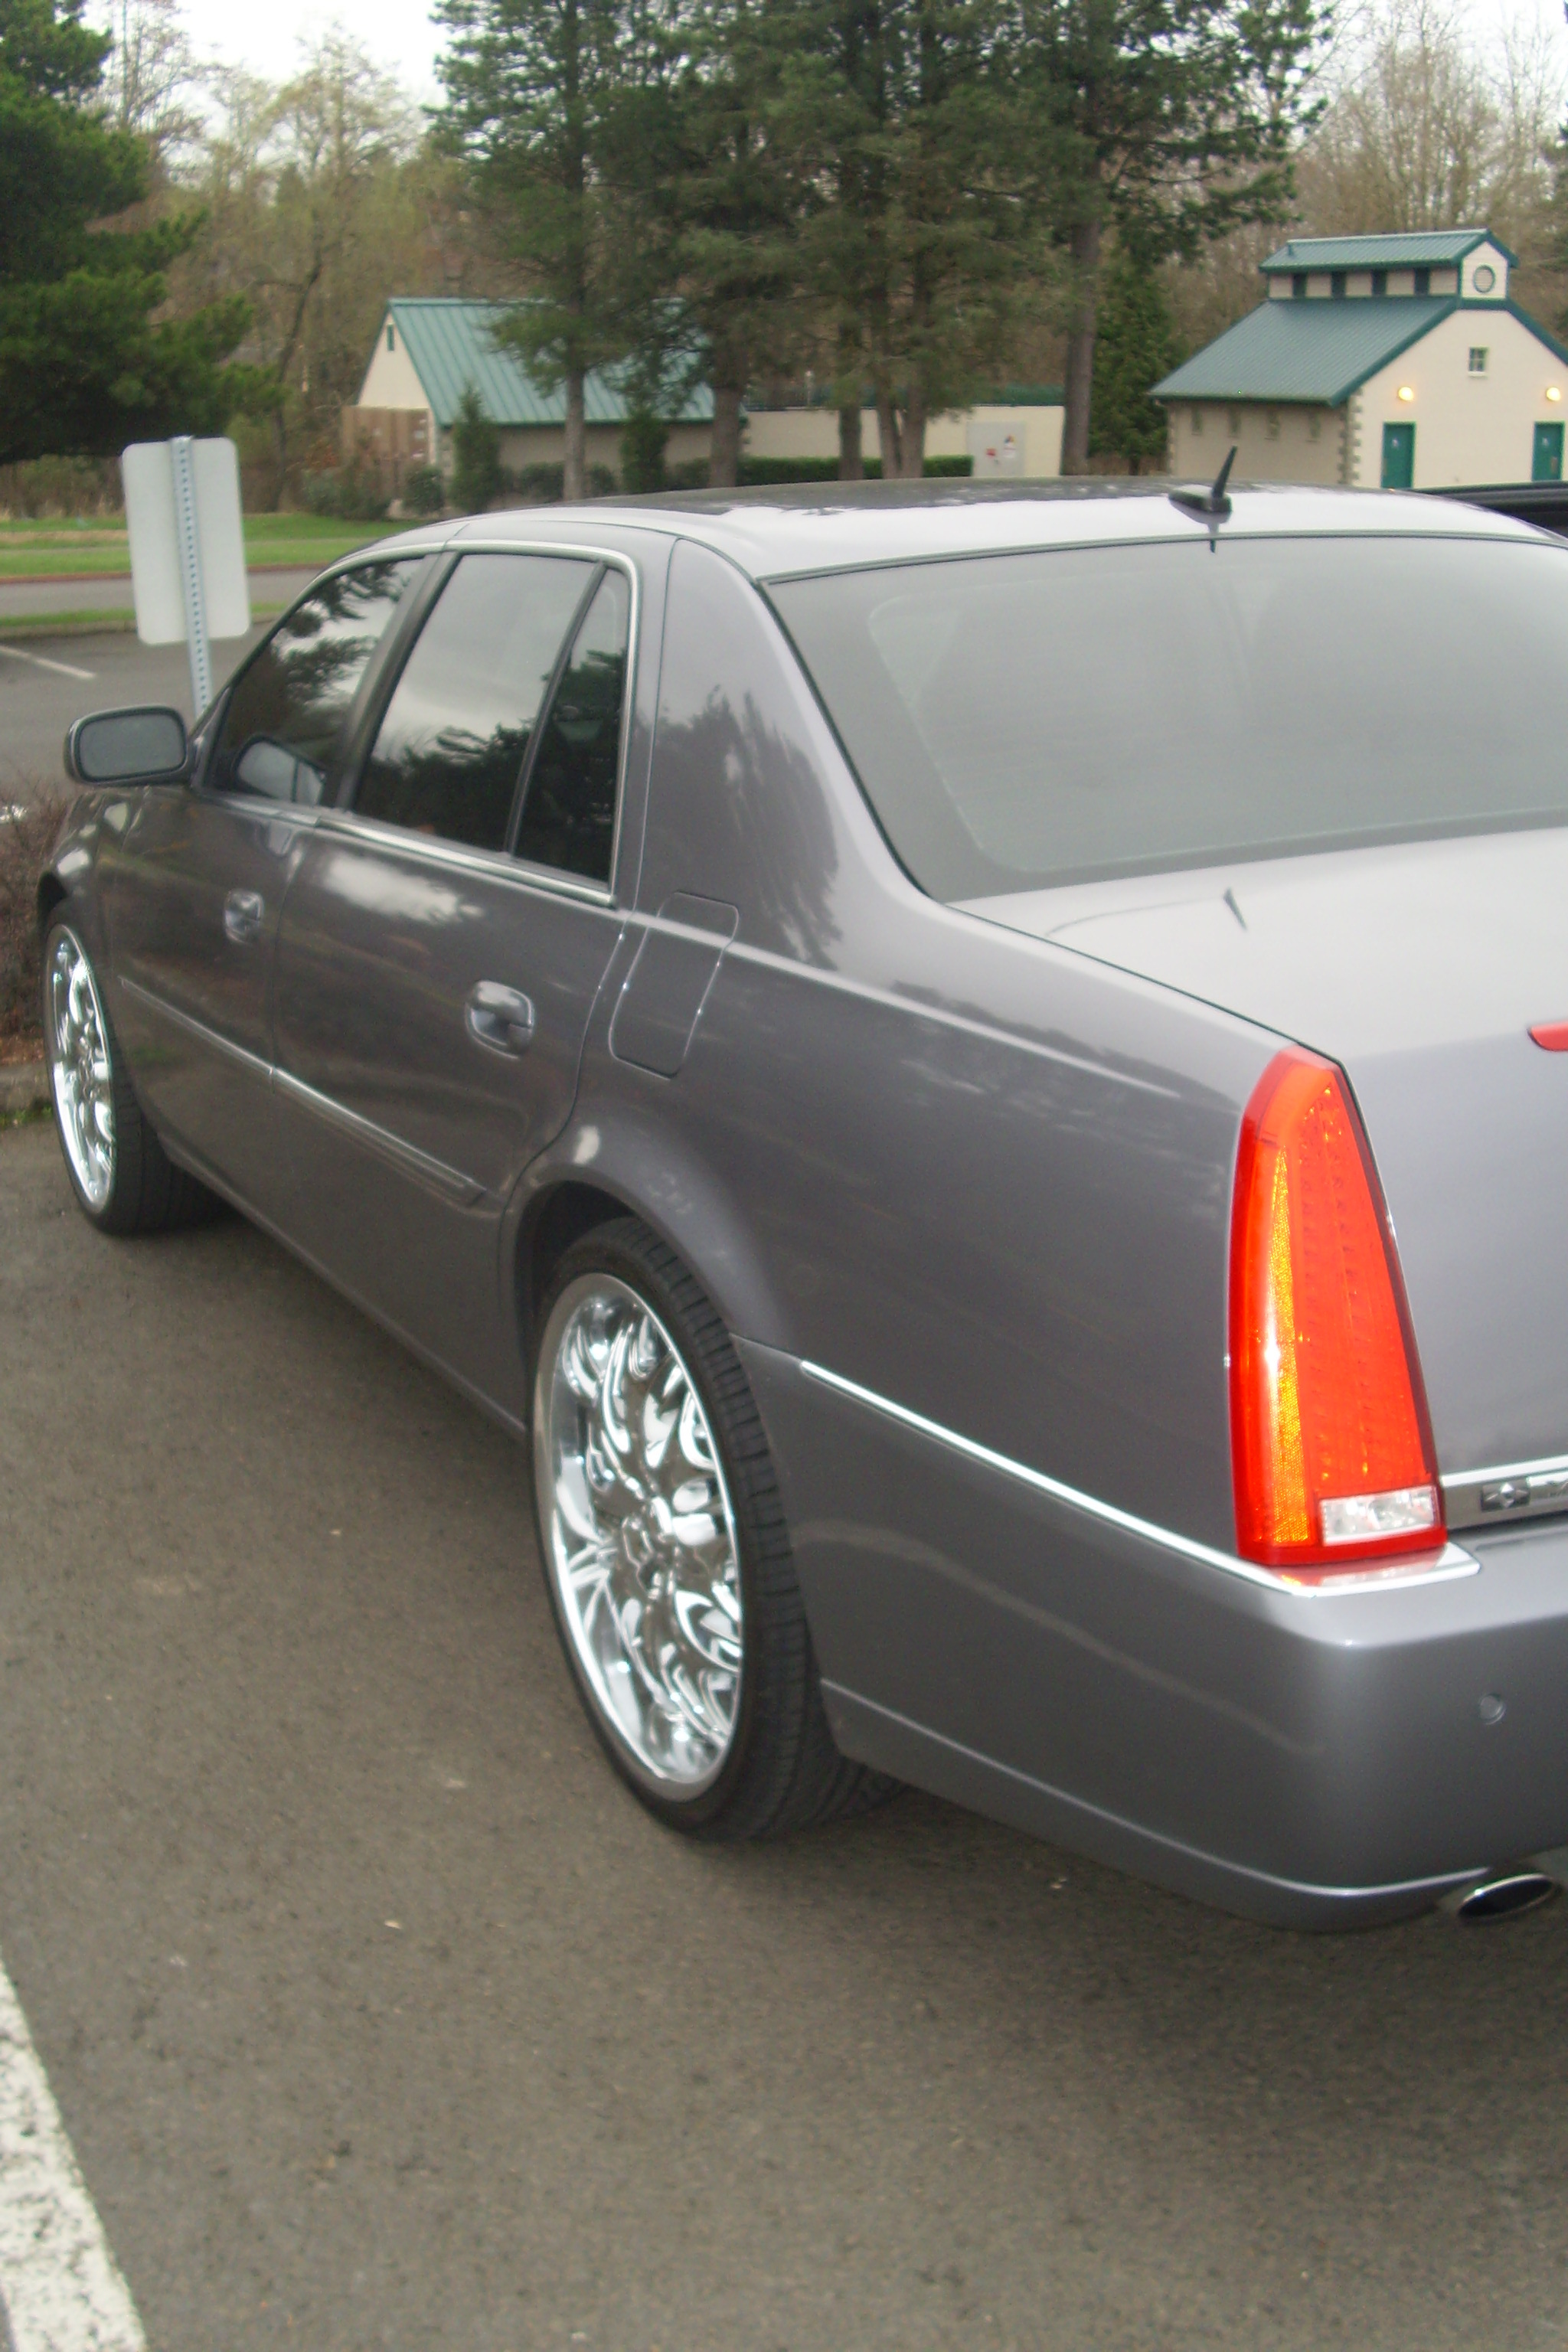 GORILLAKUTTY's 2007 Cadillac DTS